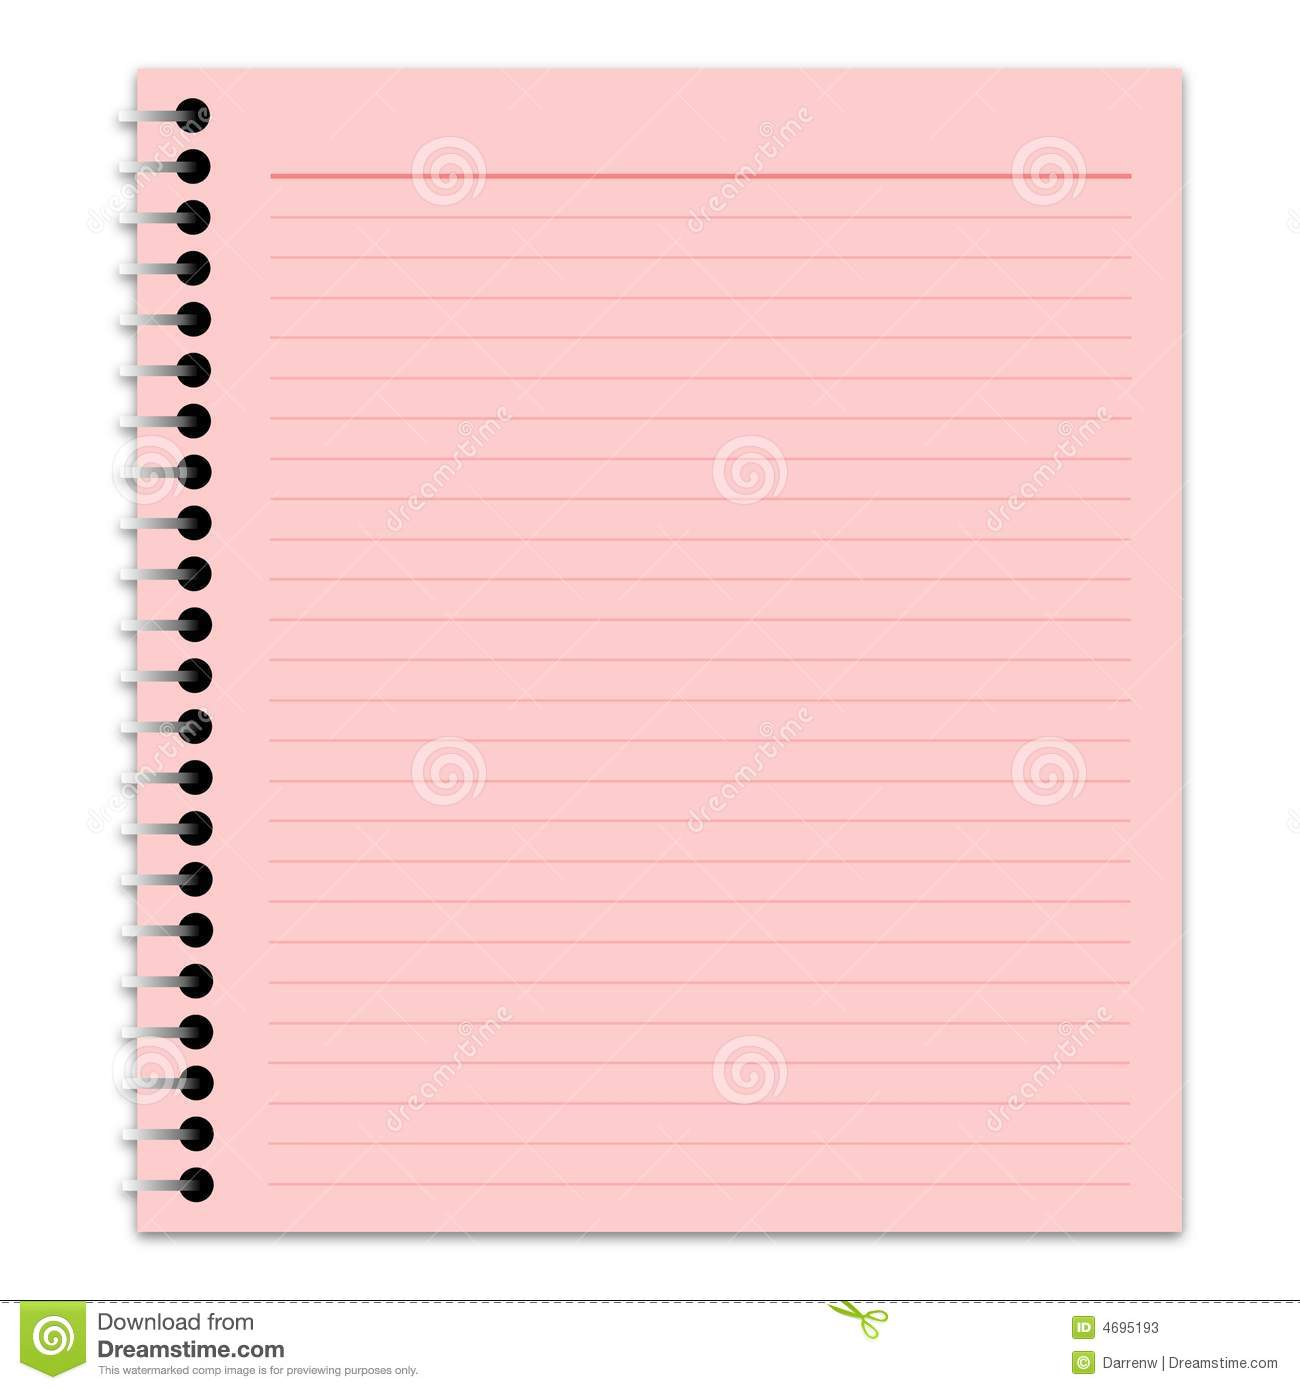 Illustration Of A Lined Pink Notepad Page With Drop Shadow Over A